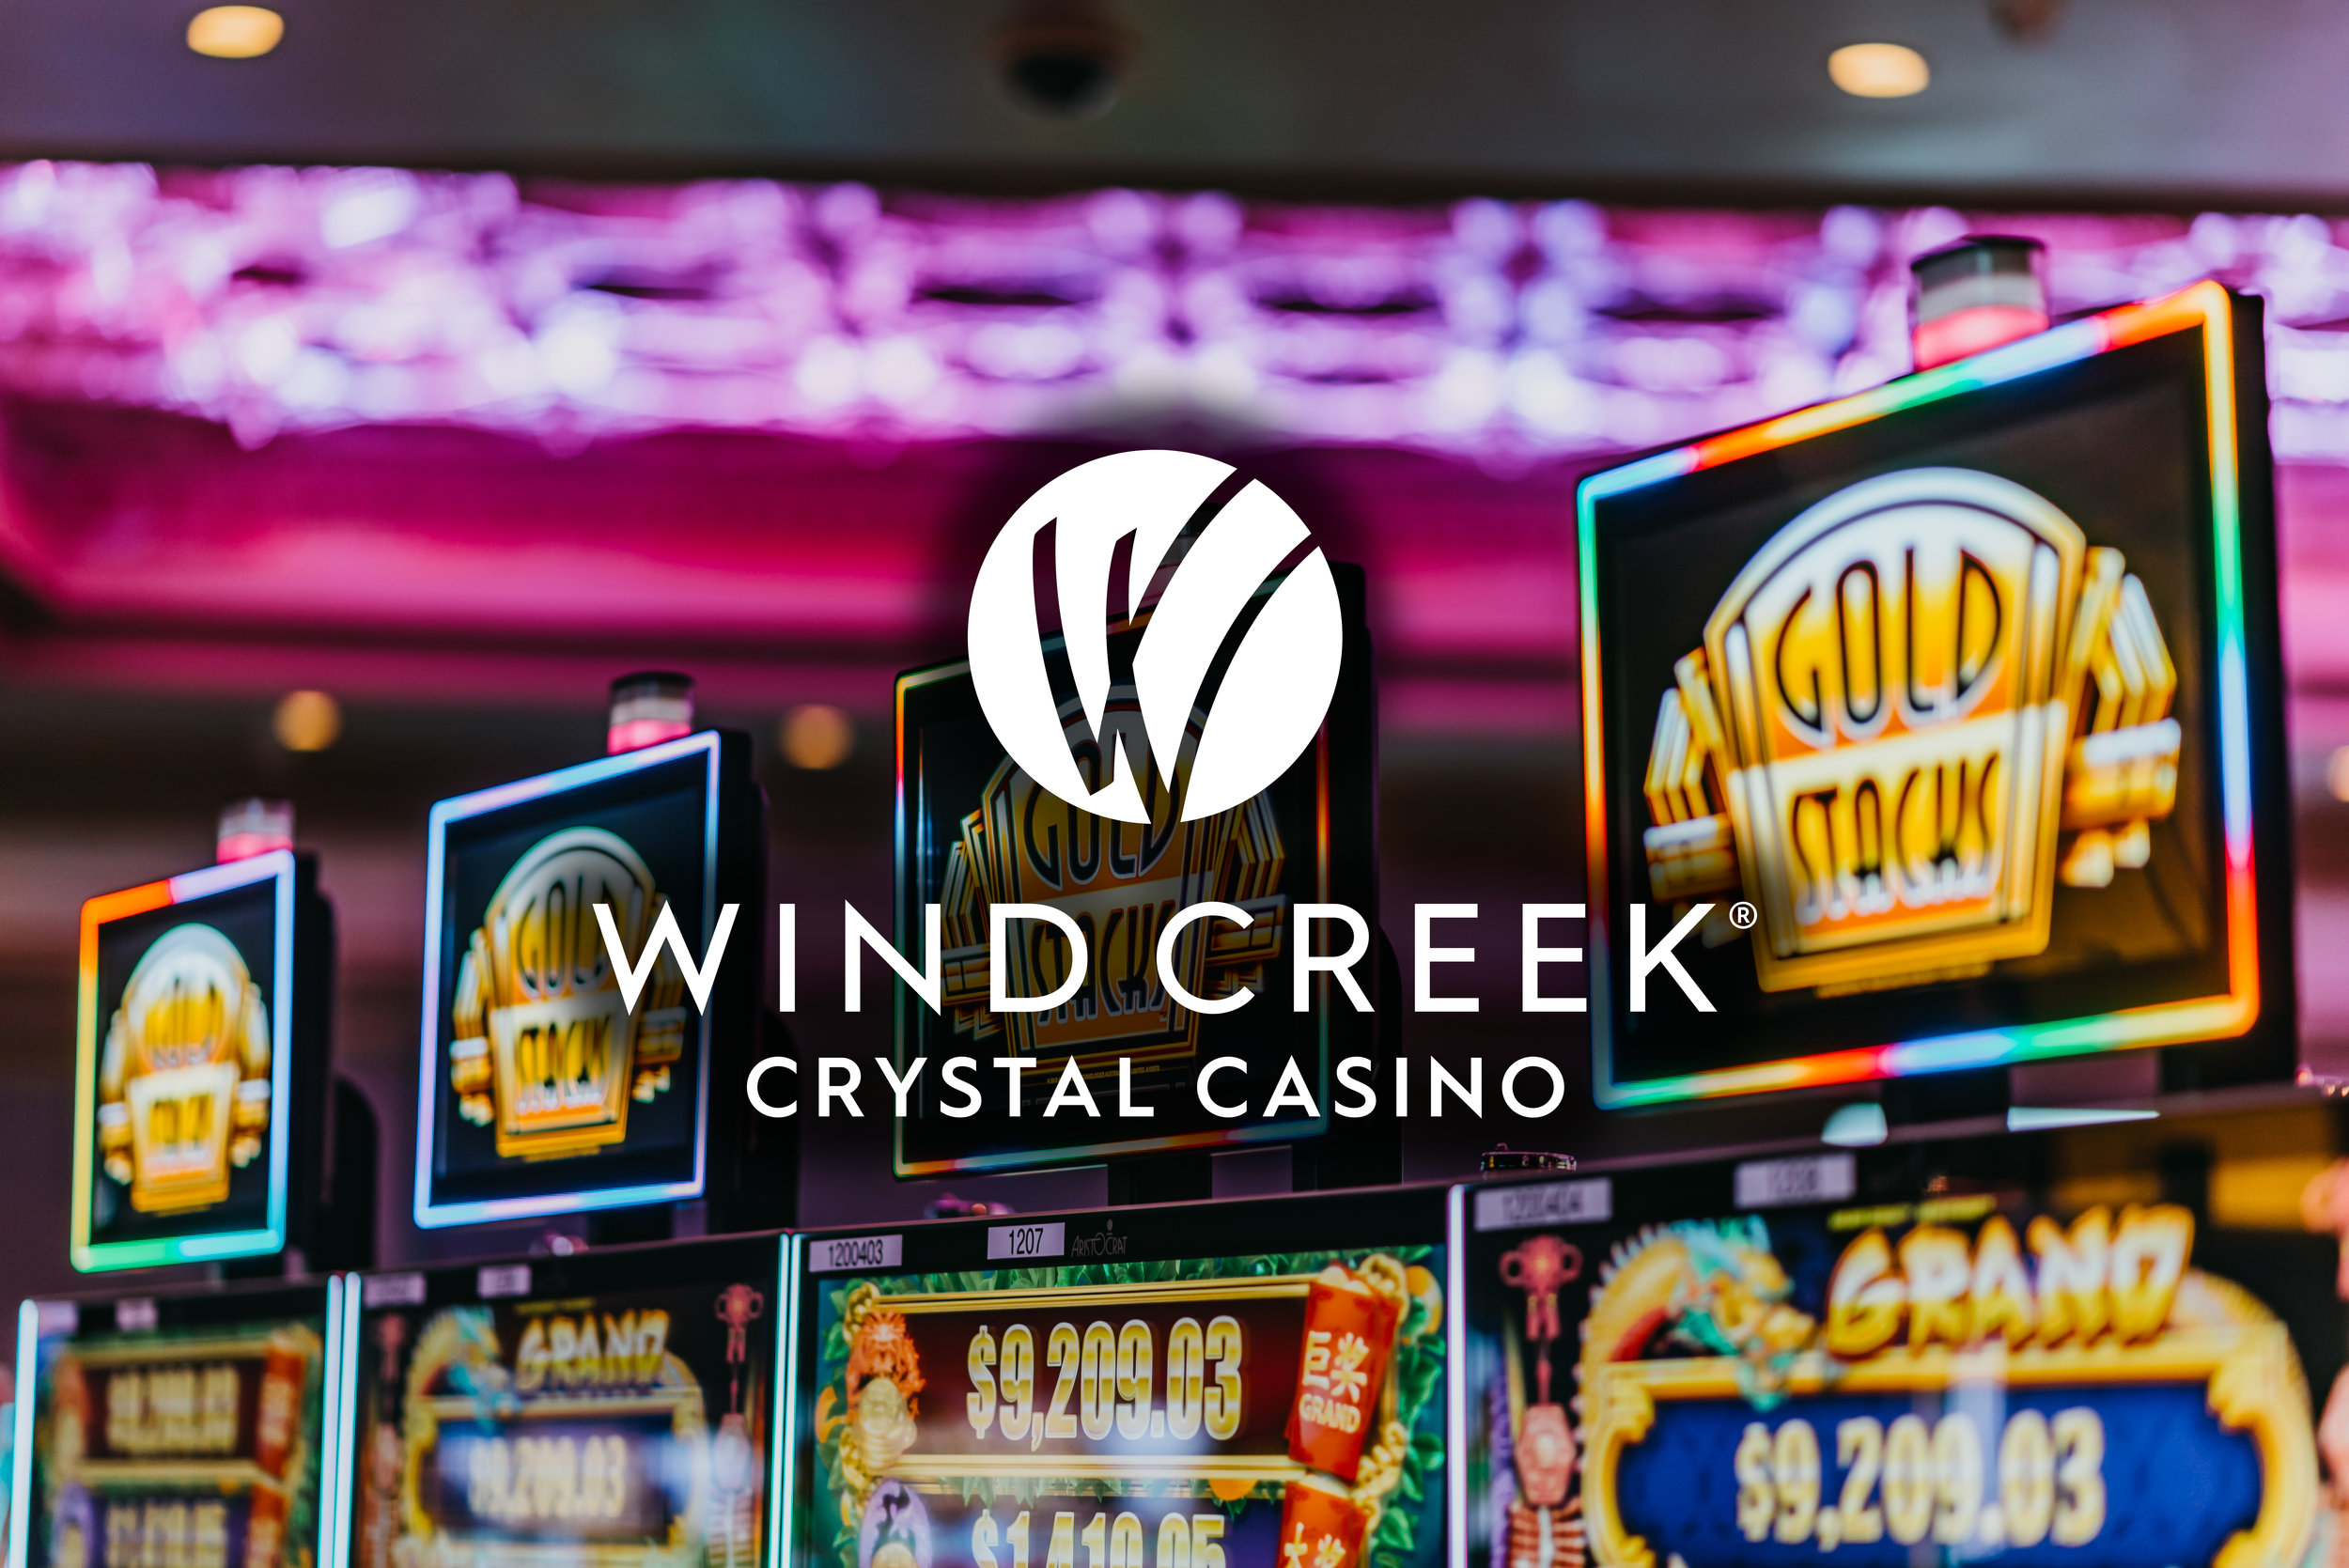 Wind Creek Crystal Casino